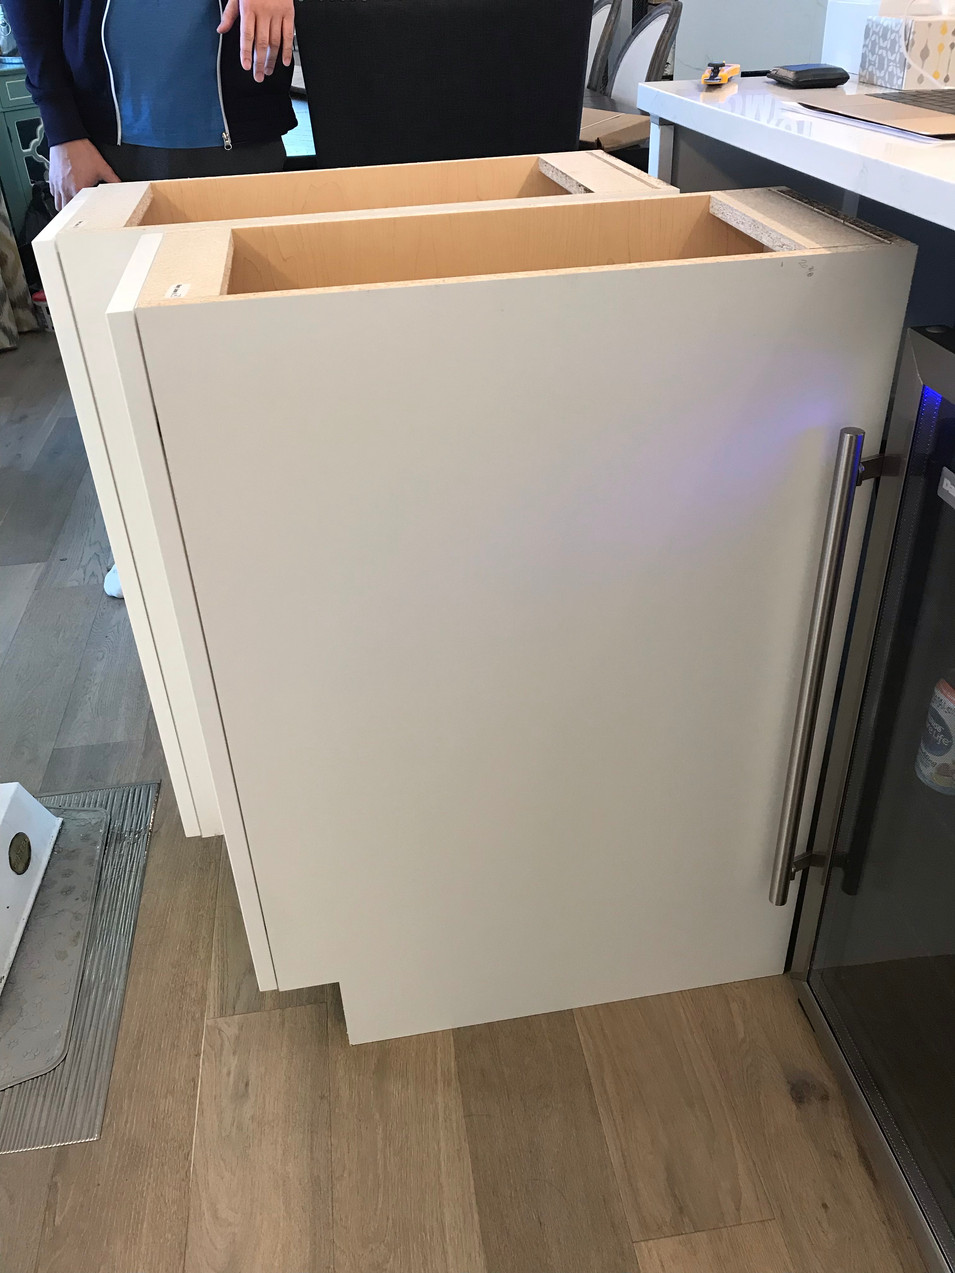 Cabinets and Winefridge for the new island.